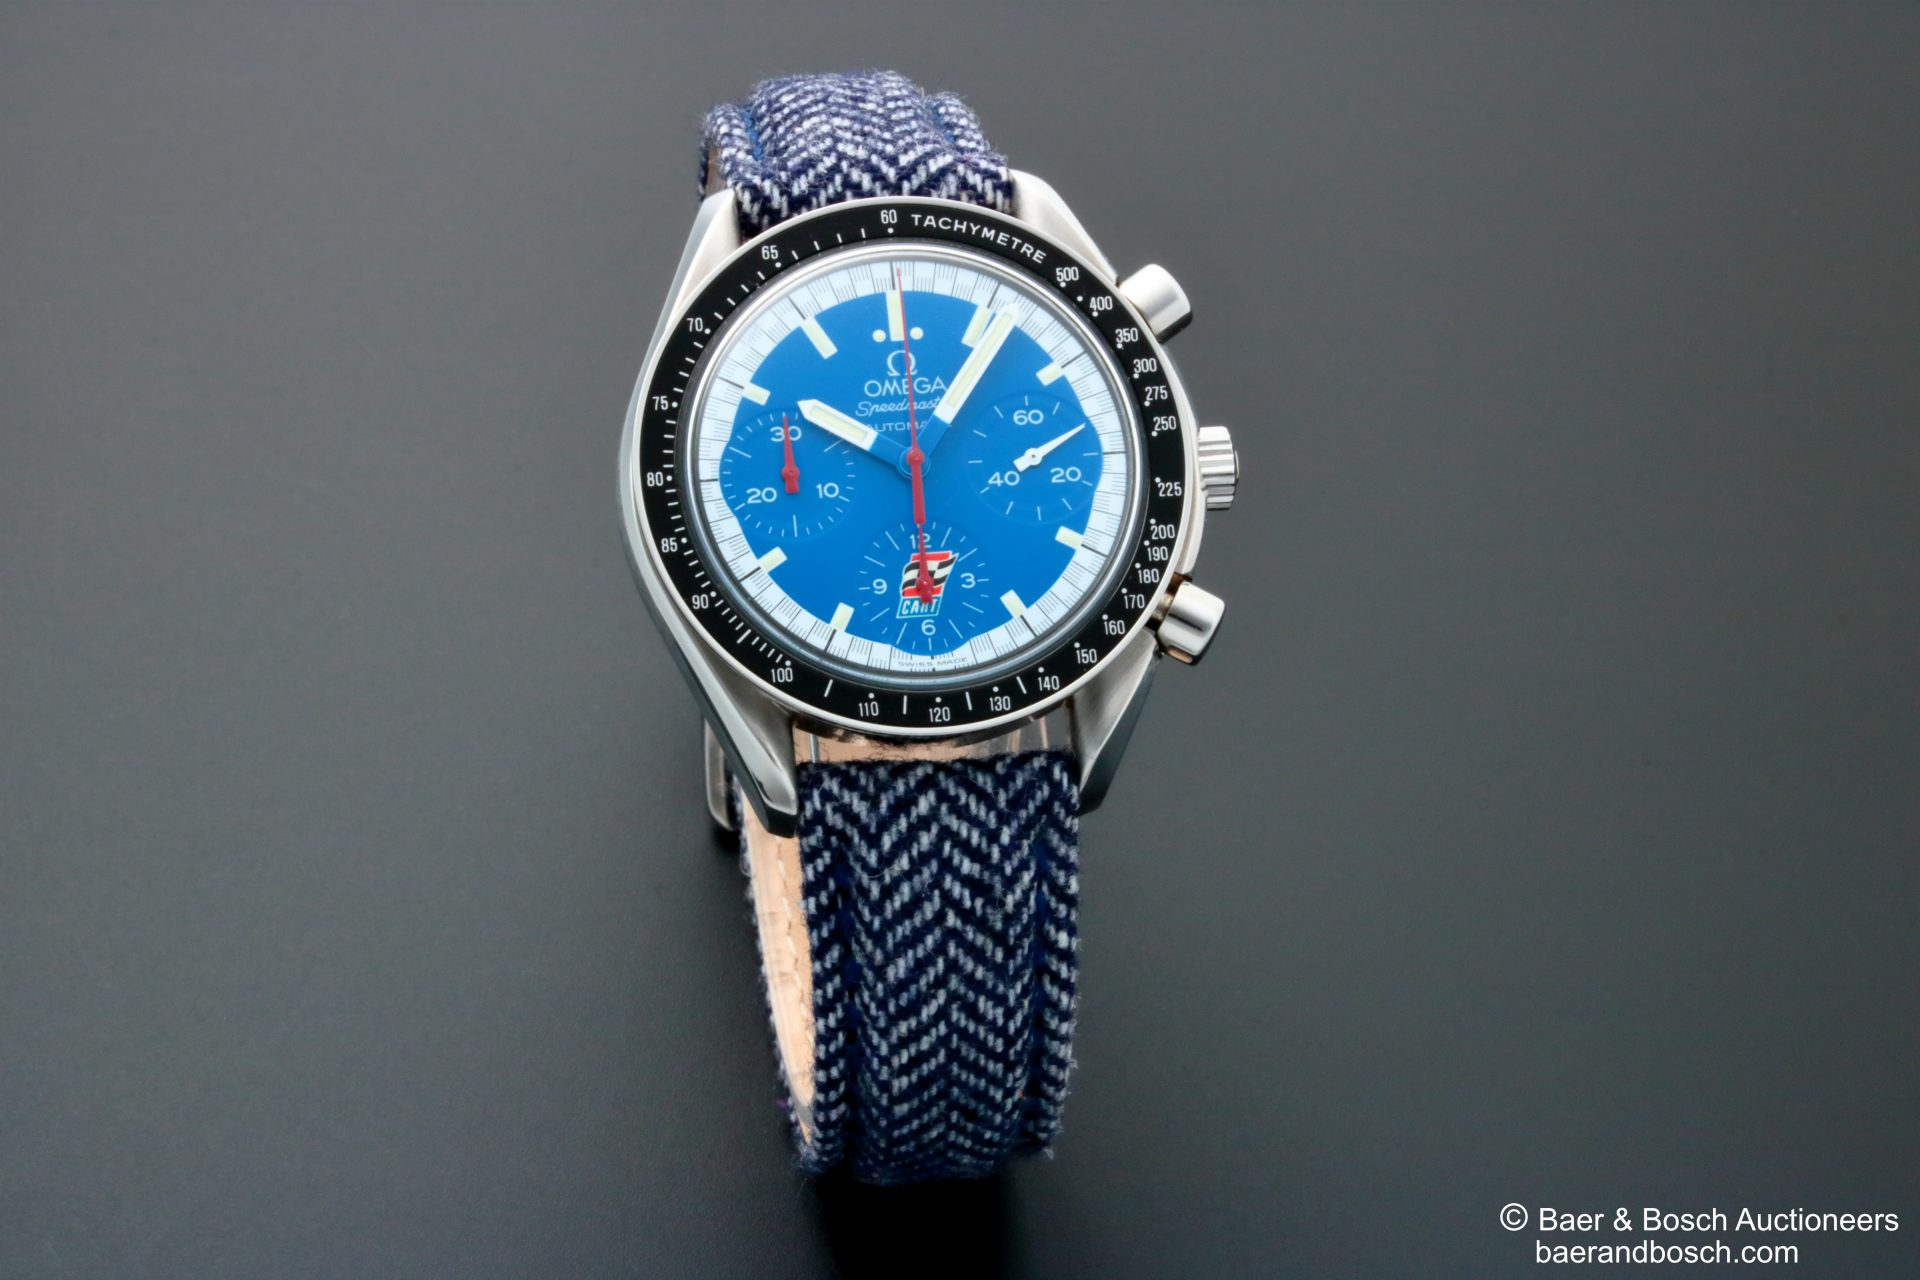 Omega Speedmaster Blue Cart Dial Watch 3510.80 - Baer & Bosch Collecting Times